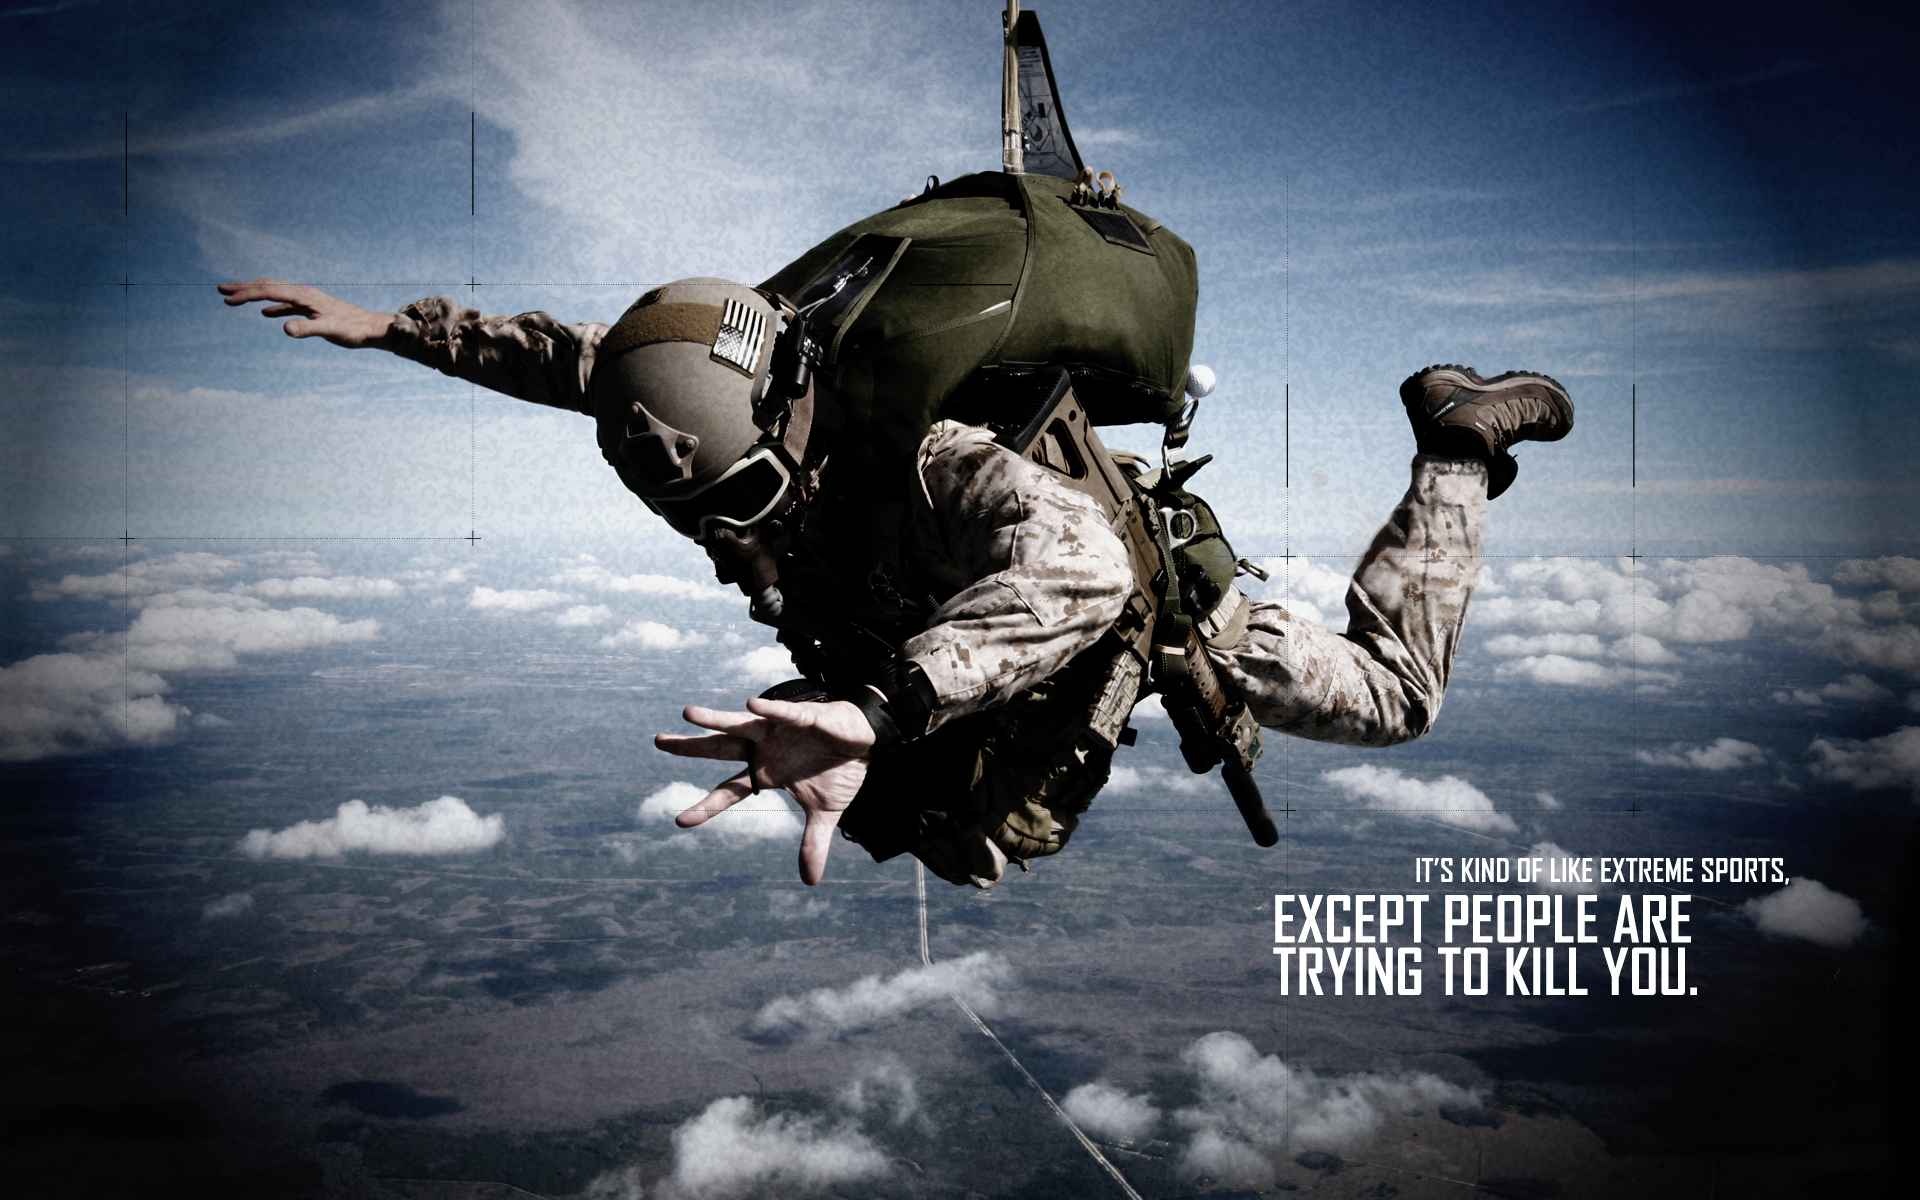 Soldier Skydive Fall Paratrooper warriors mask military text quotes statement dark wallpaper background